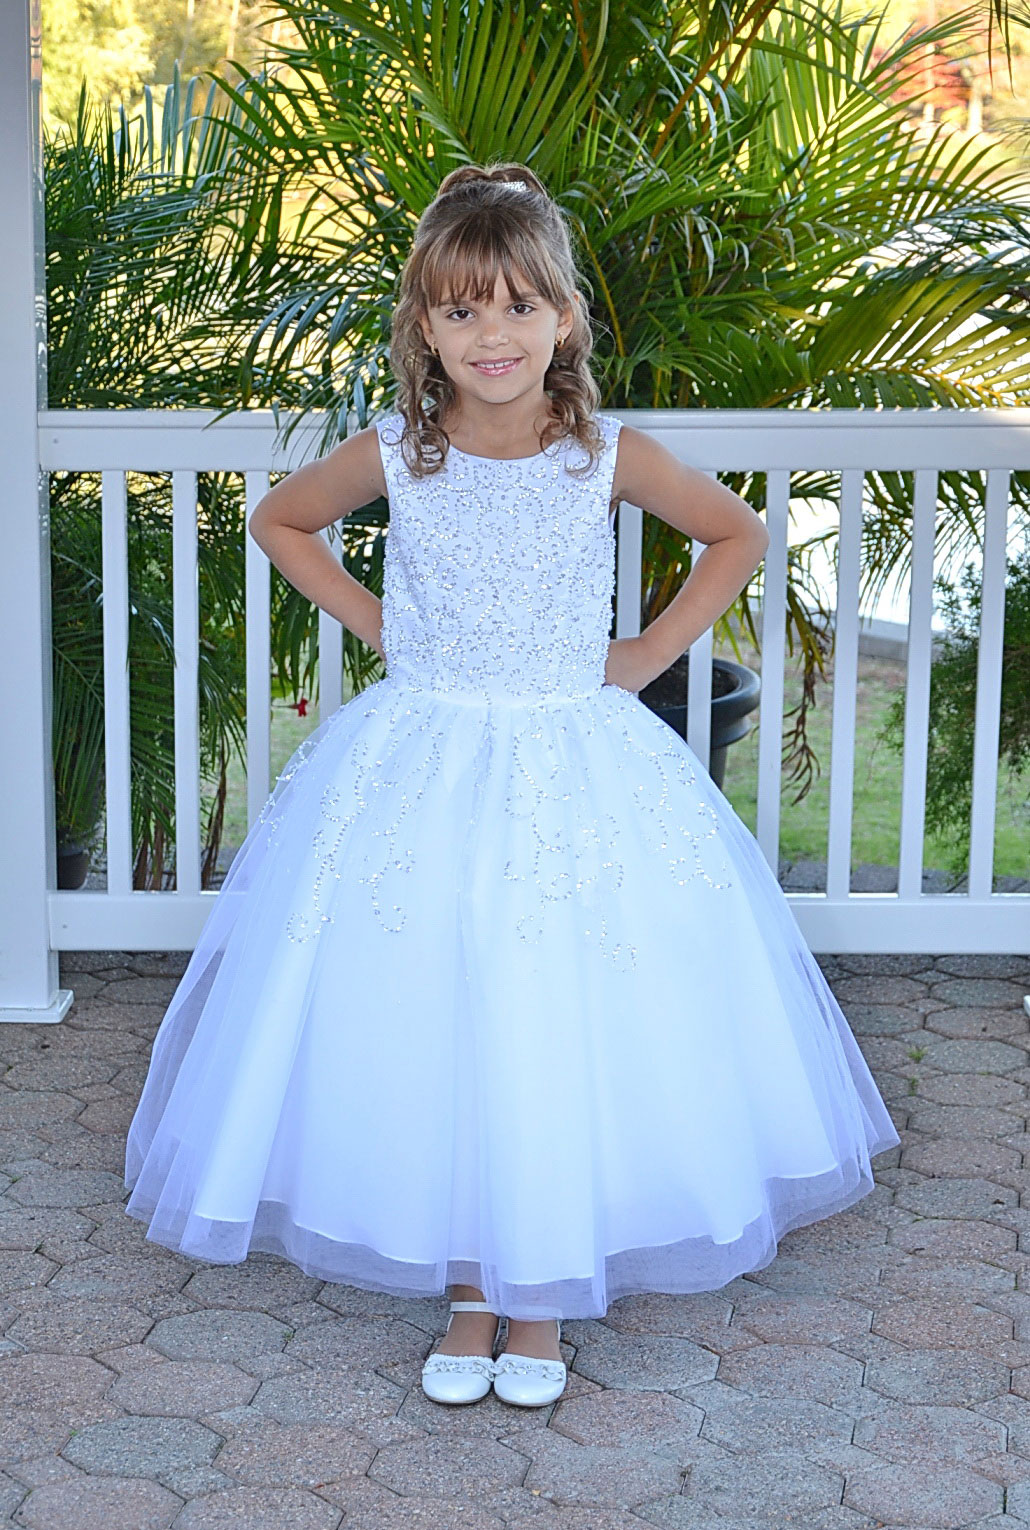 SP 472 Girls Dress Style 472 Satin Beaded Dress with